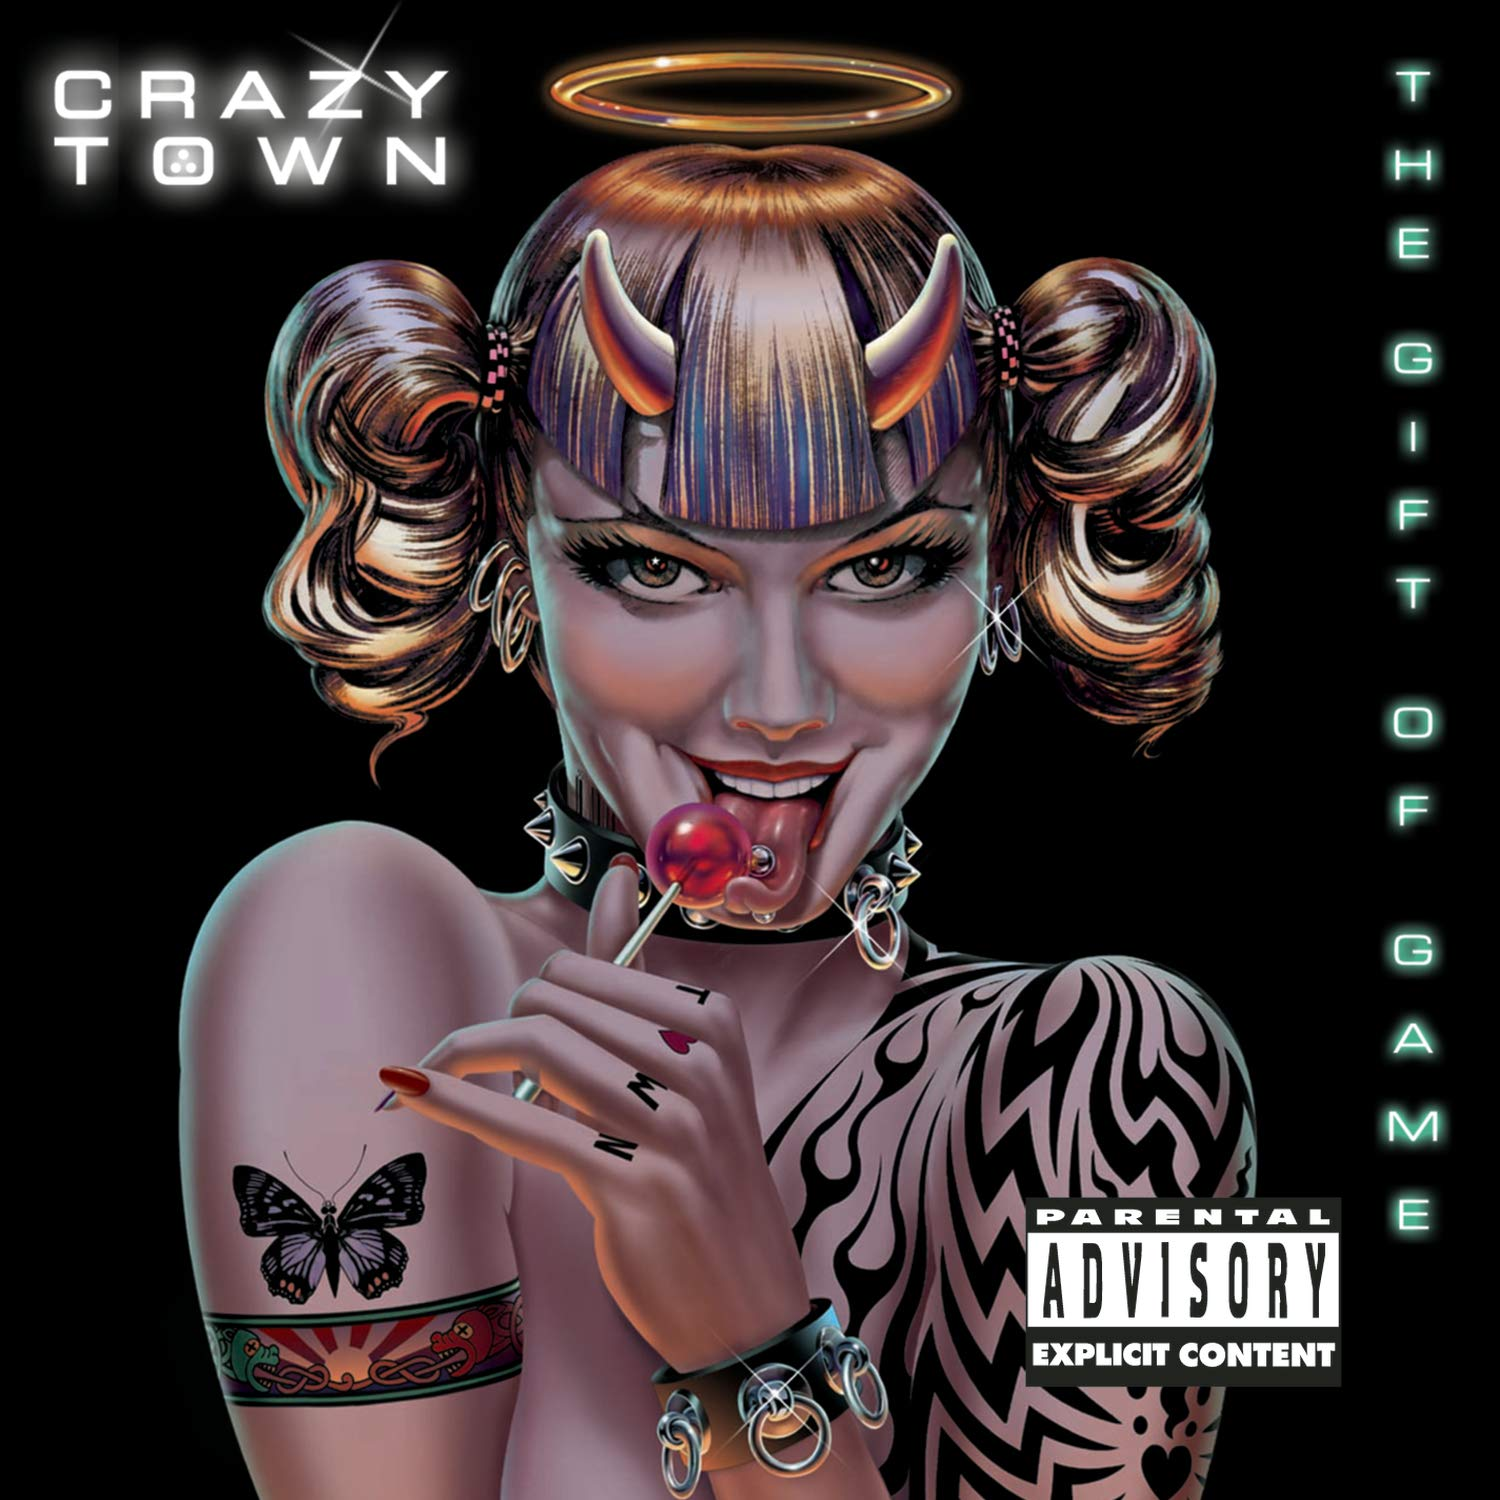 Crazy Town - The Gift Of Game (1999)